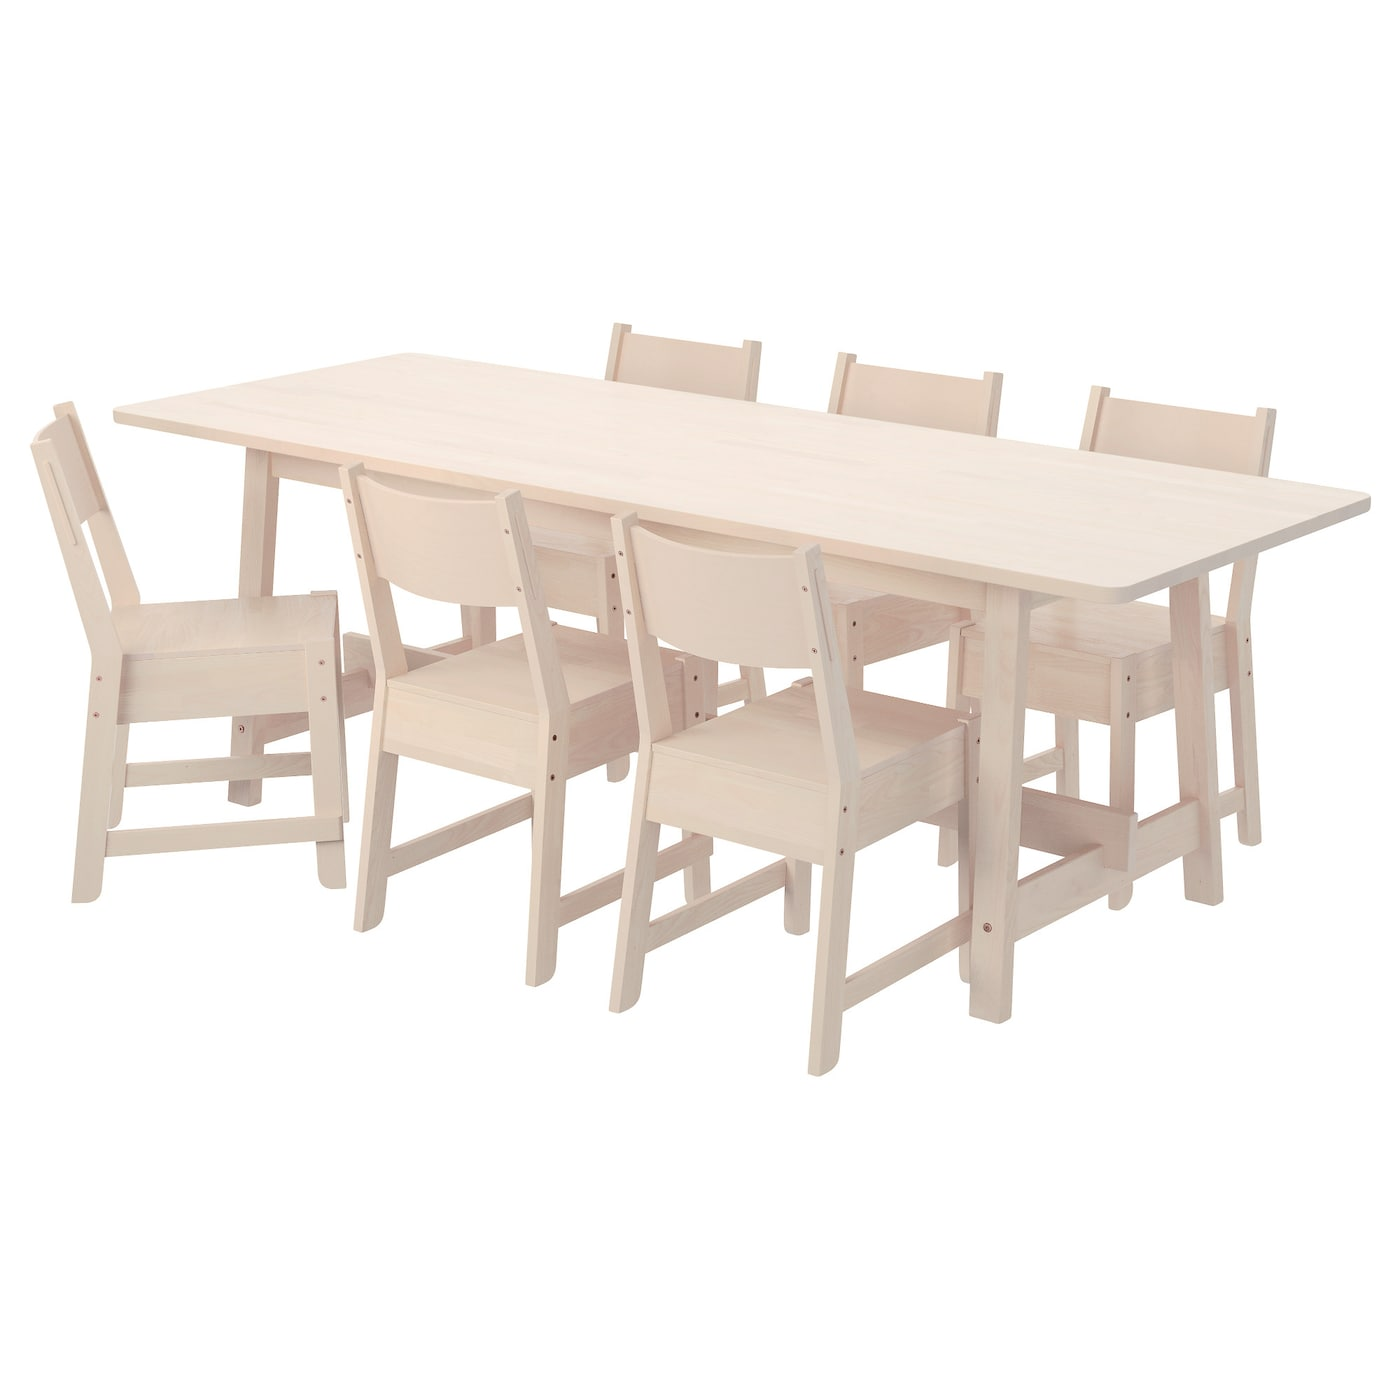 norra ker norra ker table and 6 chairs white birch white birch 220